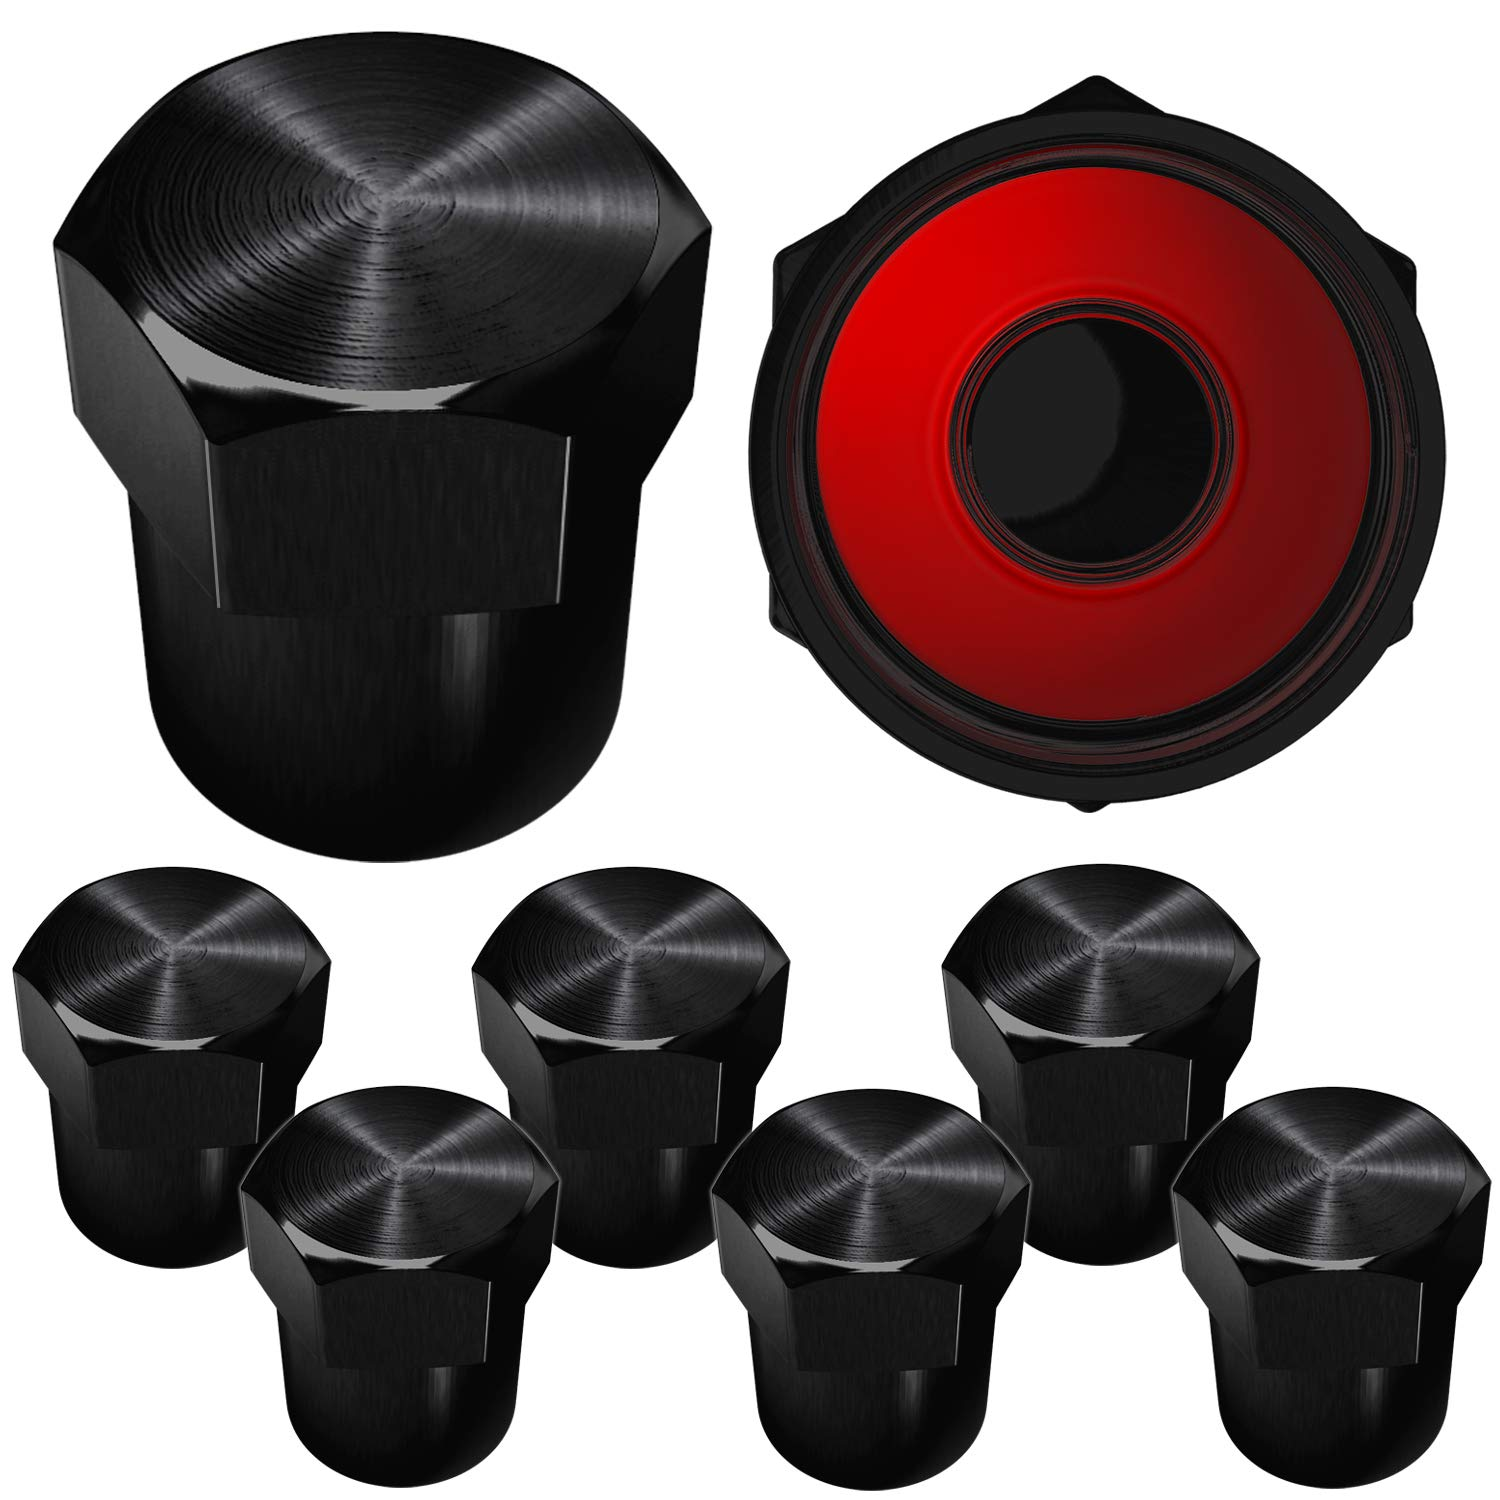 ,Universal Stem Covers for Cars SUVs Motorcycles,Airtight Seal Dust Proof,Black XBRN Tire Valve Caps 40 Pack Bike and Bicycle Trucks